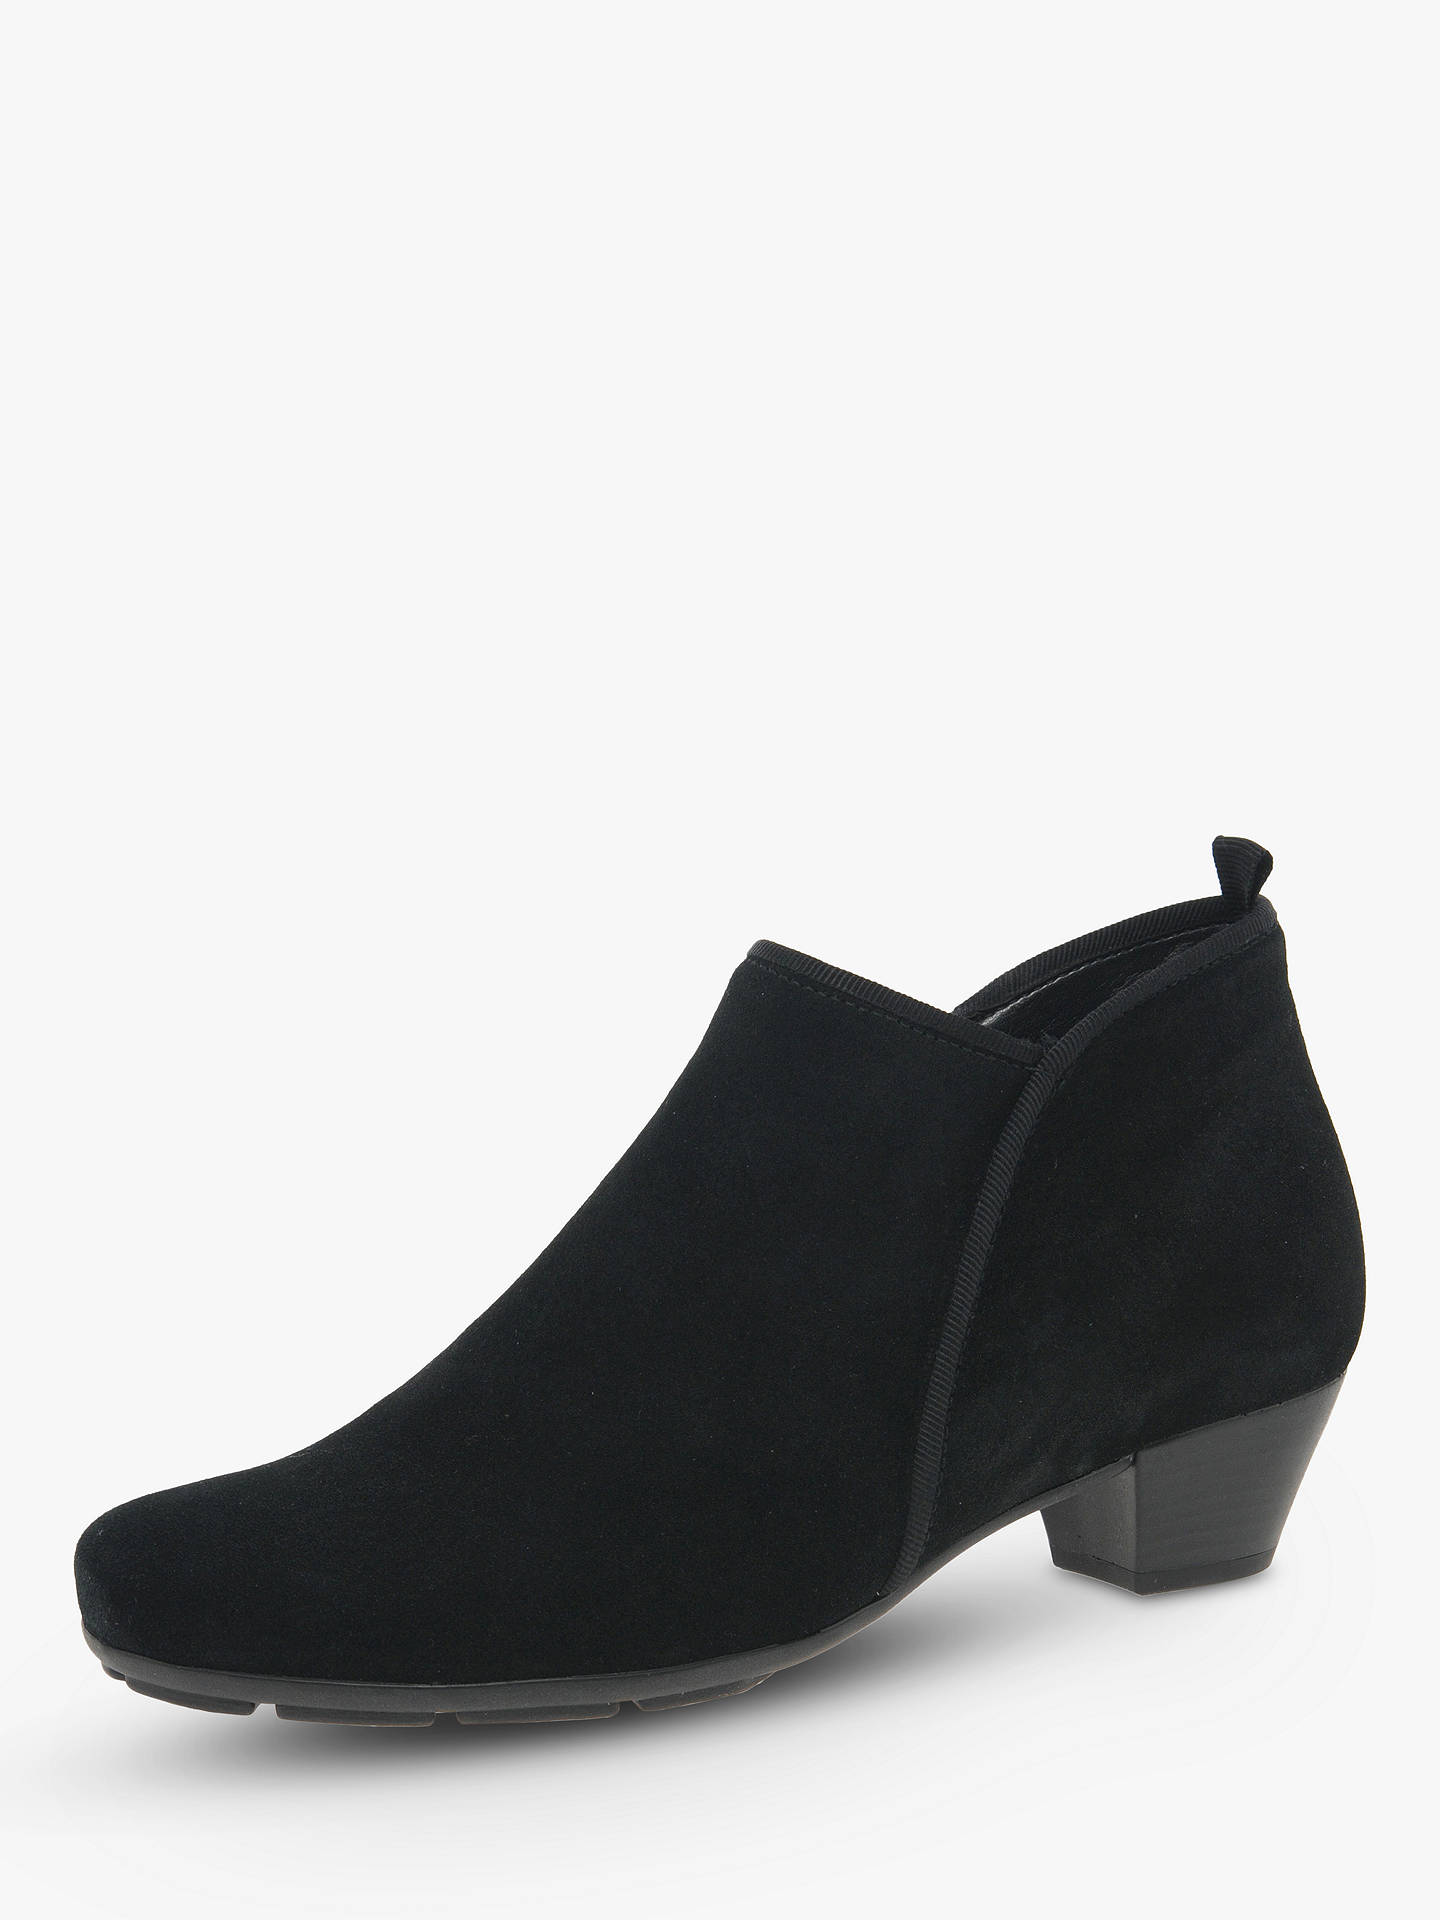 77d6f62cda24 Gabor Trudy Block Heel Ankle Boots at John Lewis   Partners